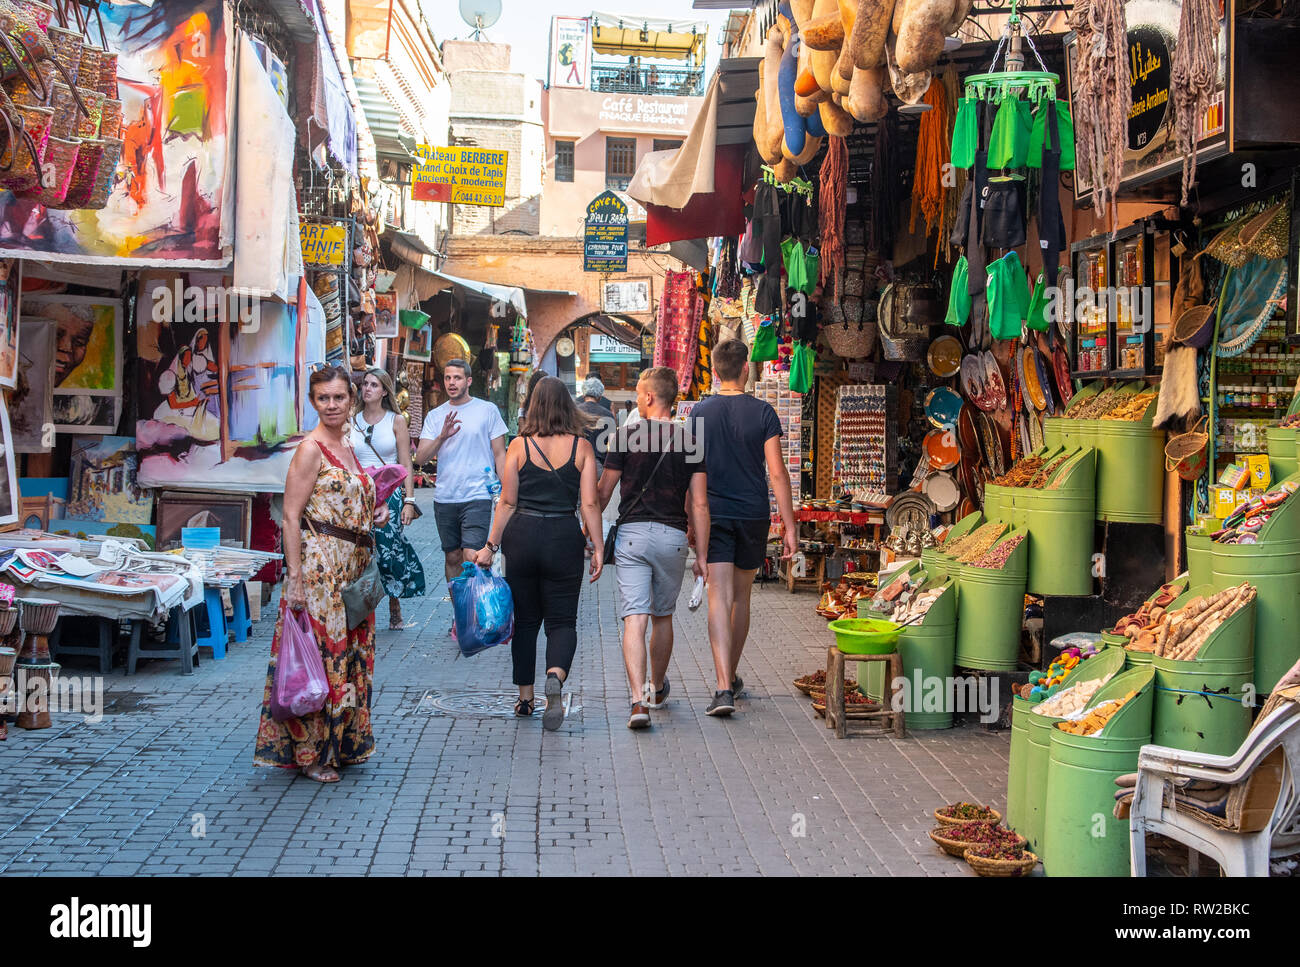 Shoppers wander down narrow street in medina quarter of Marrekech lined with market stalls selling art, spices, and other goods, Morocco - Stock Image